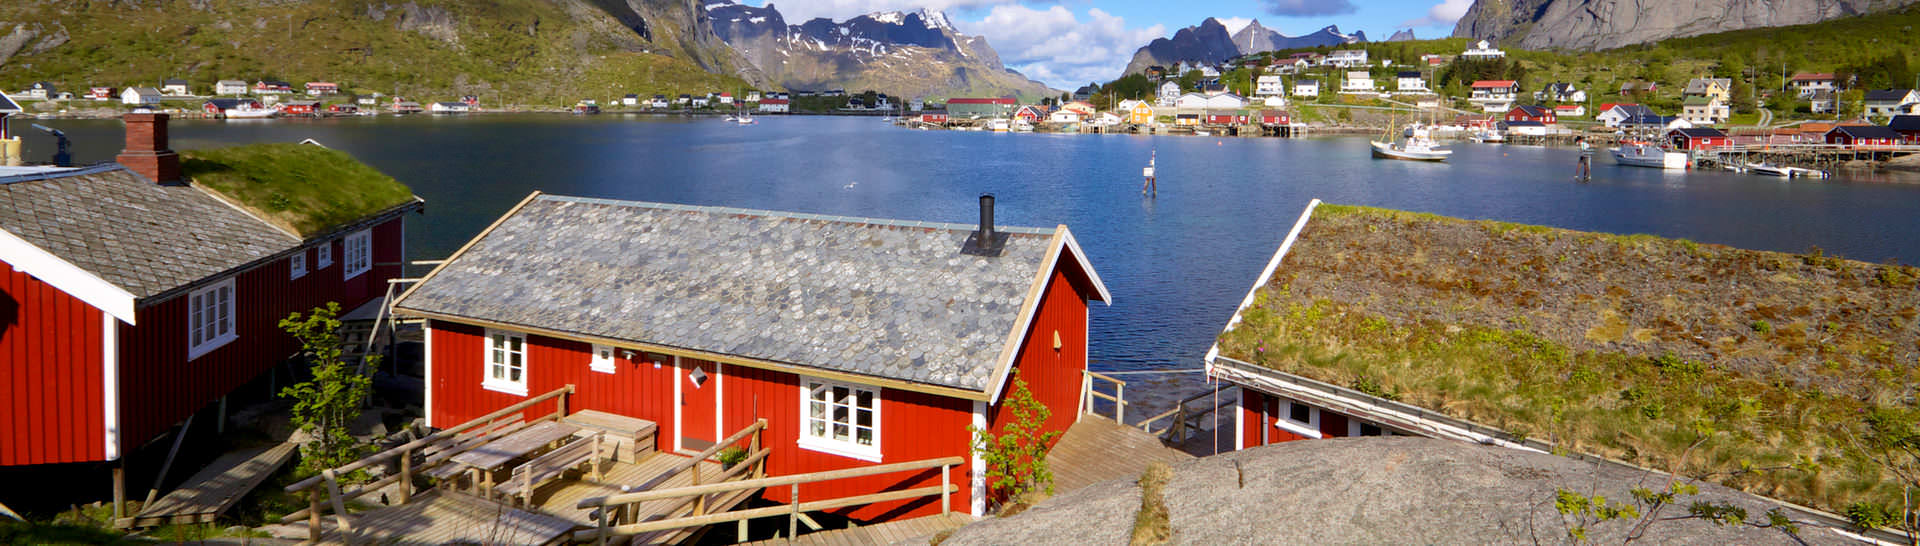 Visit a traditional fishing village of Reine to slow down and soak in some of the most picturesque fjord views